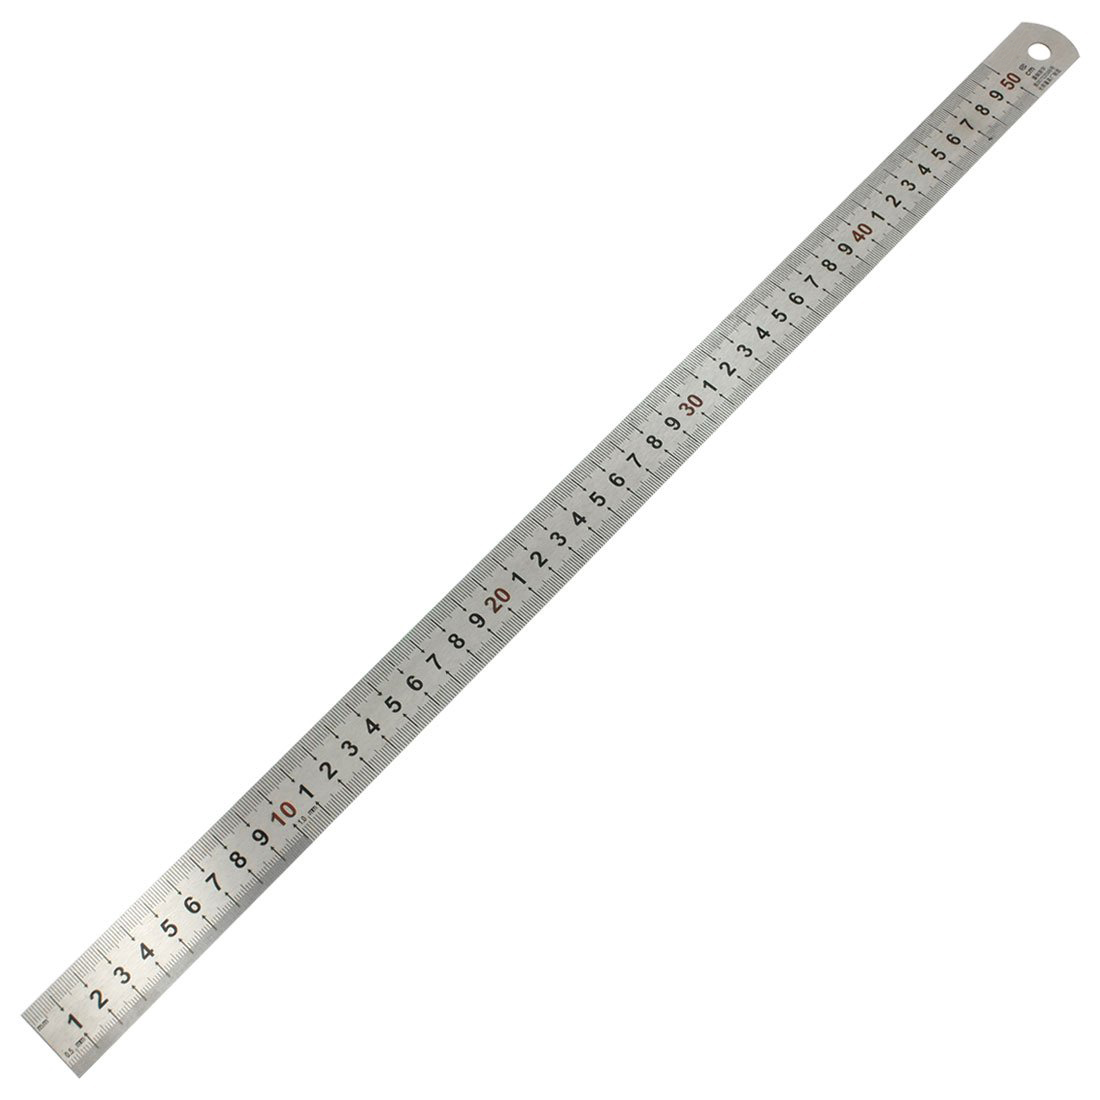 5X Double Side Scale Stainless Steel Straight Ruler Measuring Tool 50cm